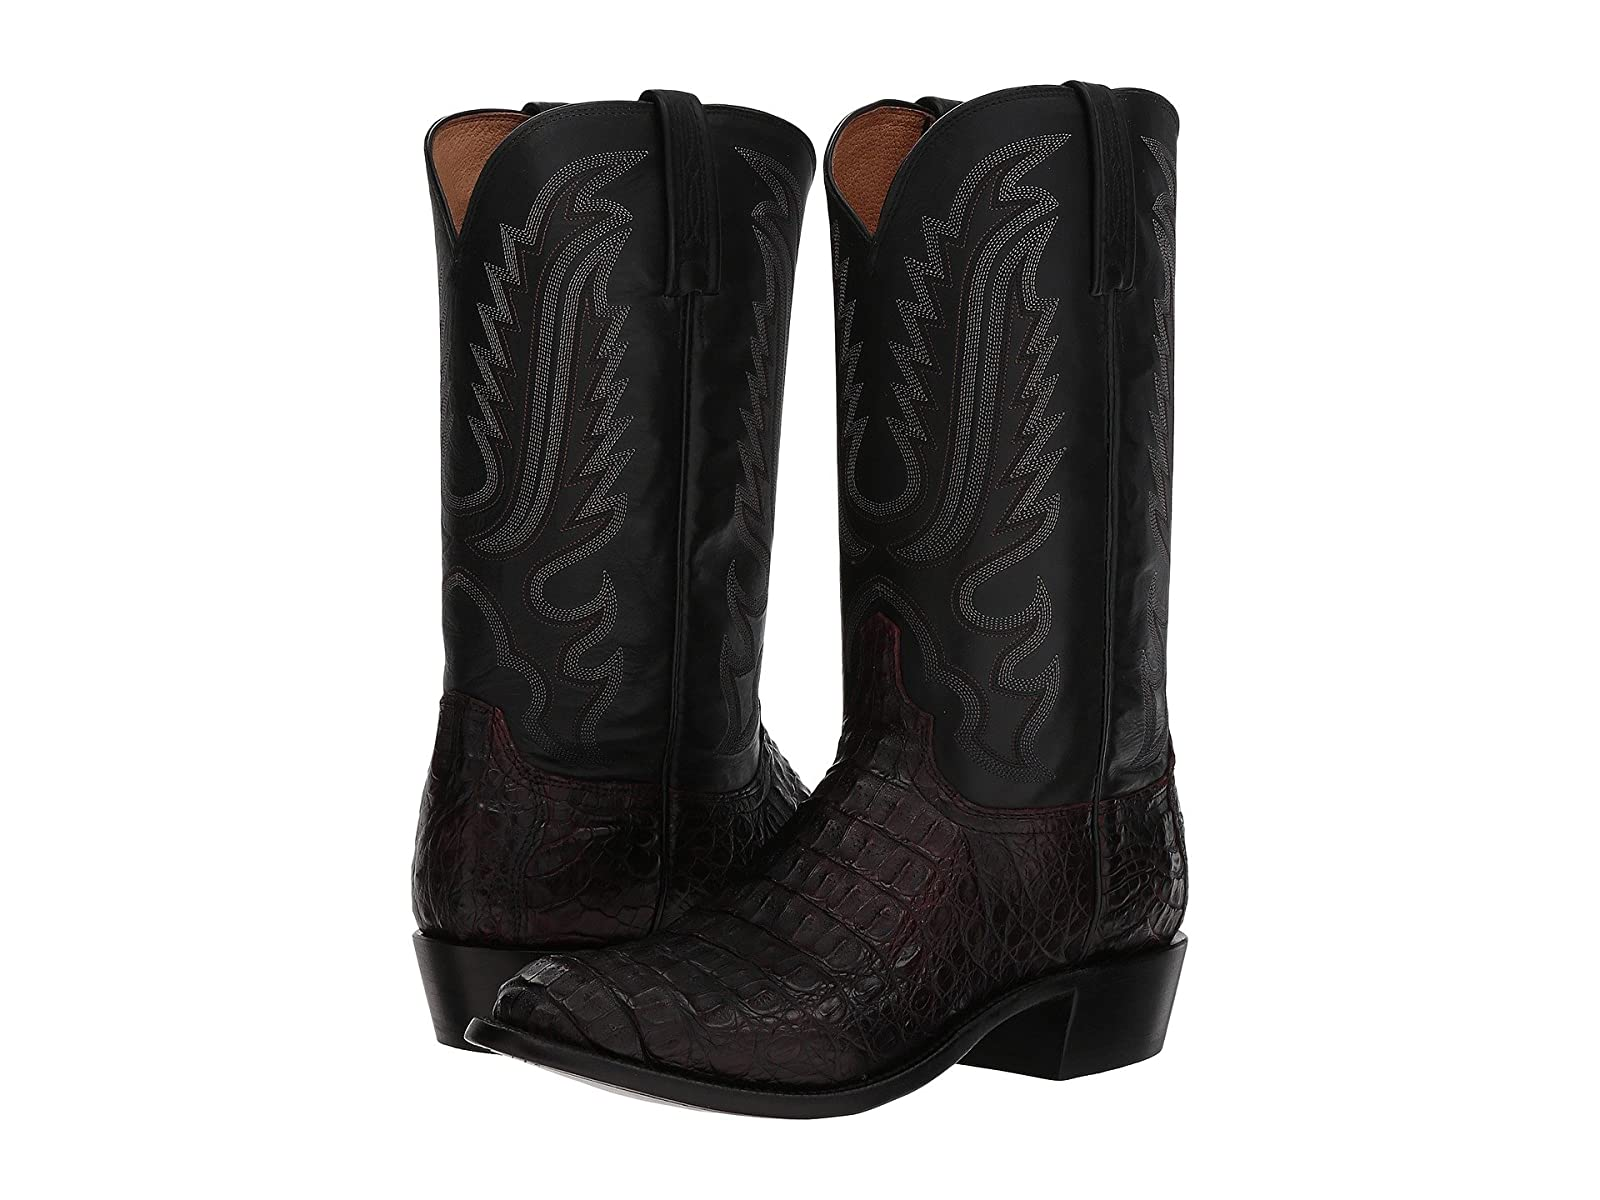 Lucchese WalterAffordable and distinctive shoes